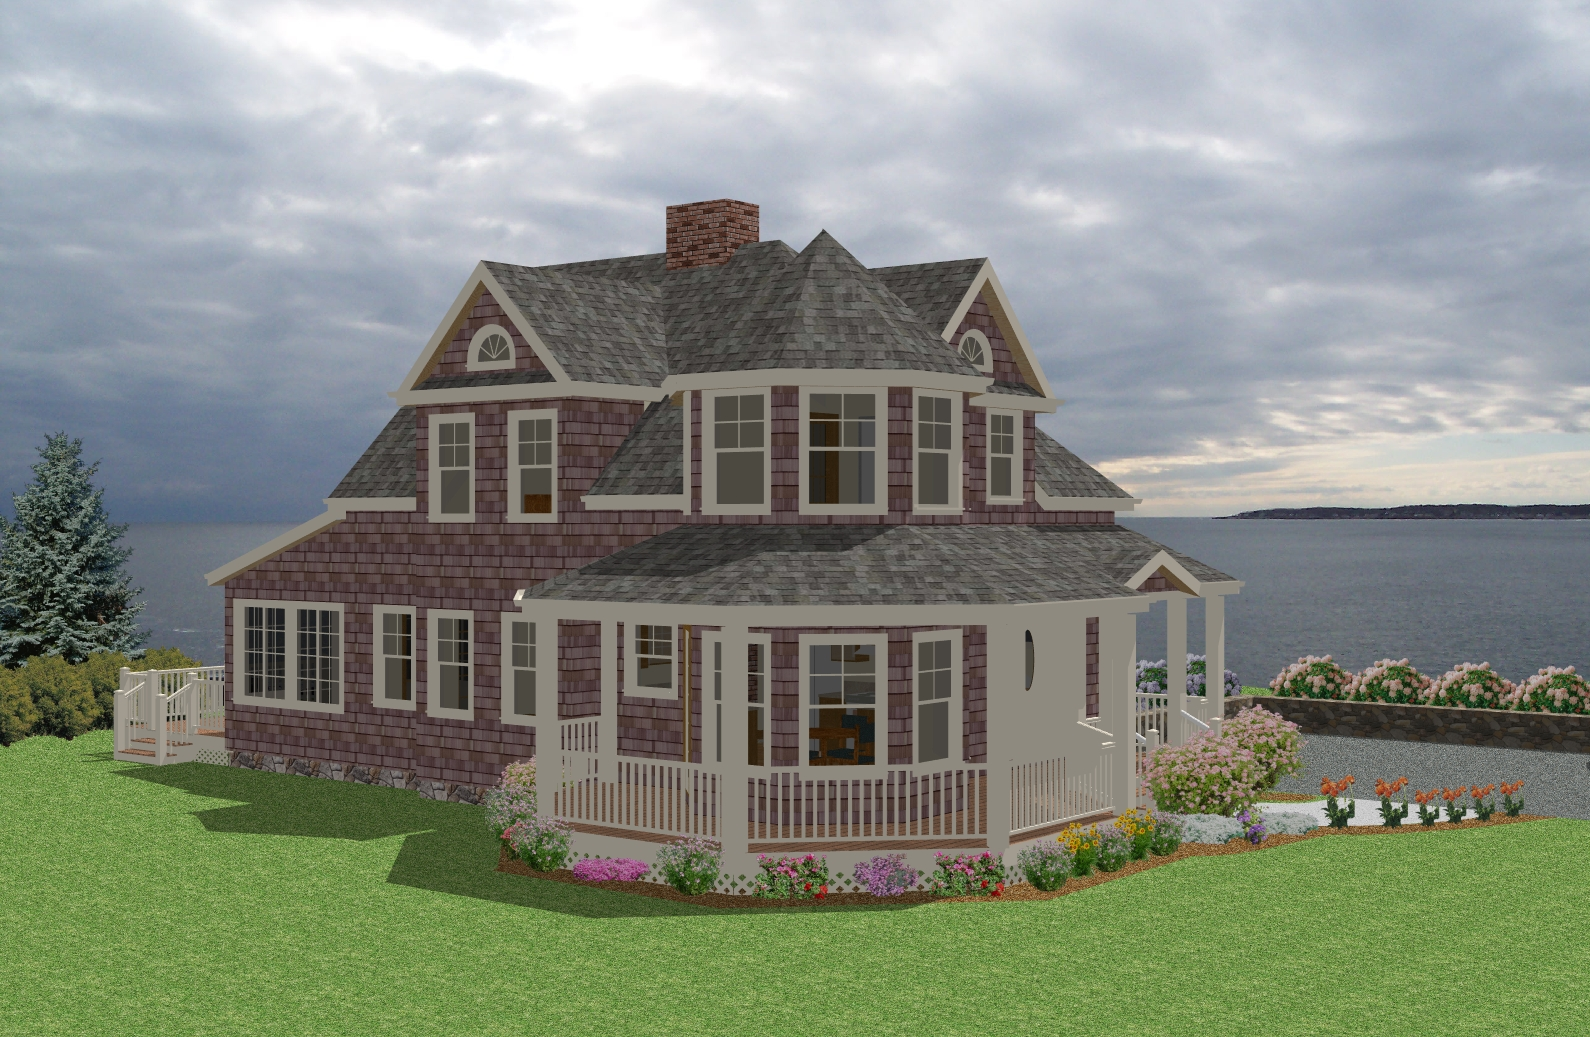 New england cottage house plans find house plans House plans for cottages